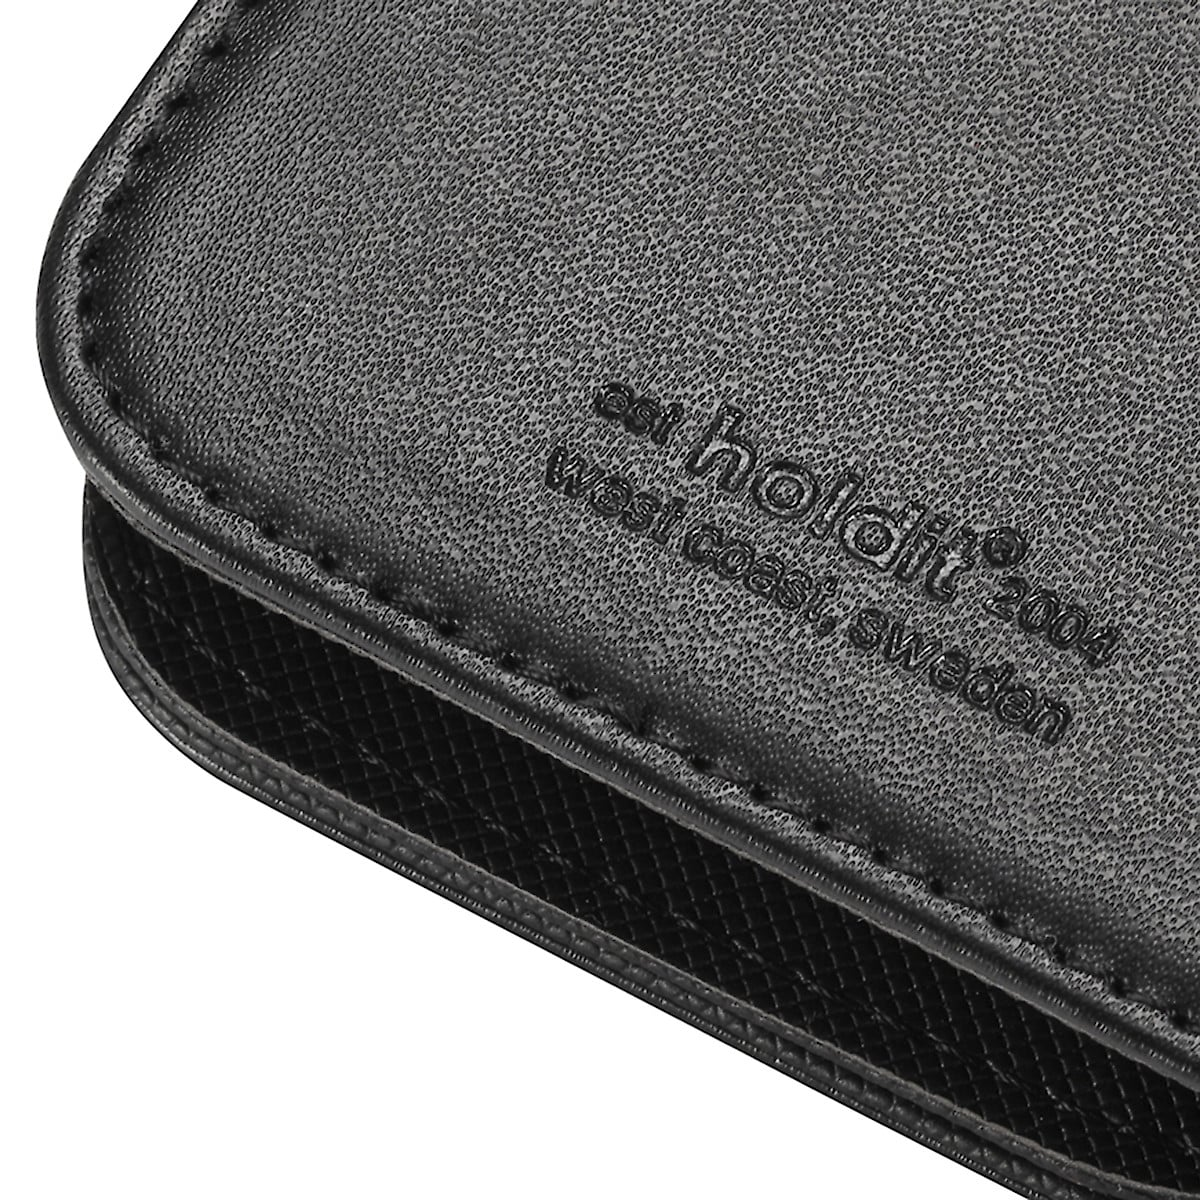 Holdit Wallet Case Extended Magnet for iPhone 11, lommebokfutteral